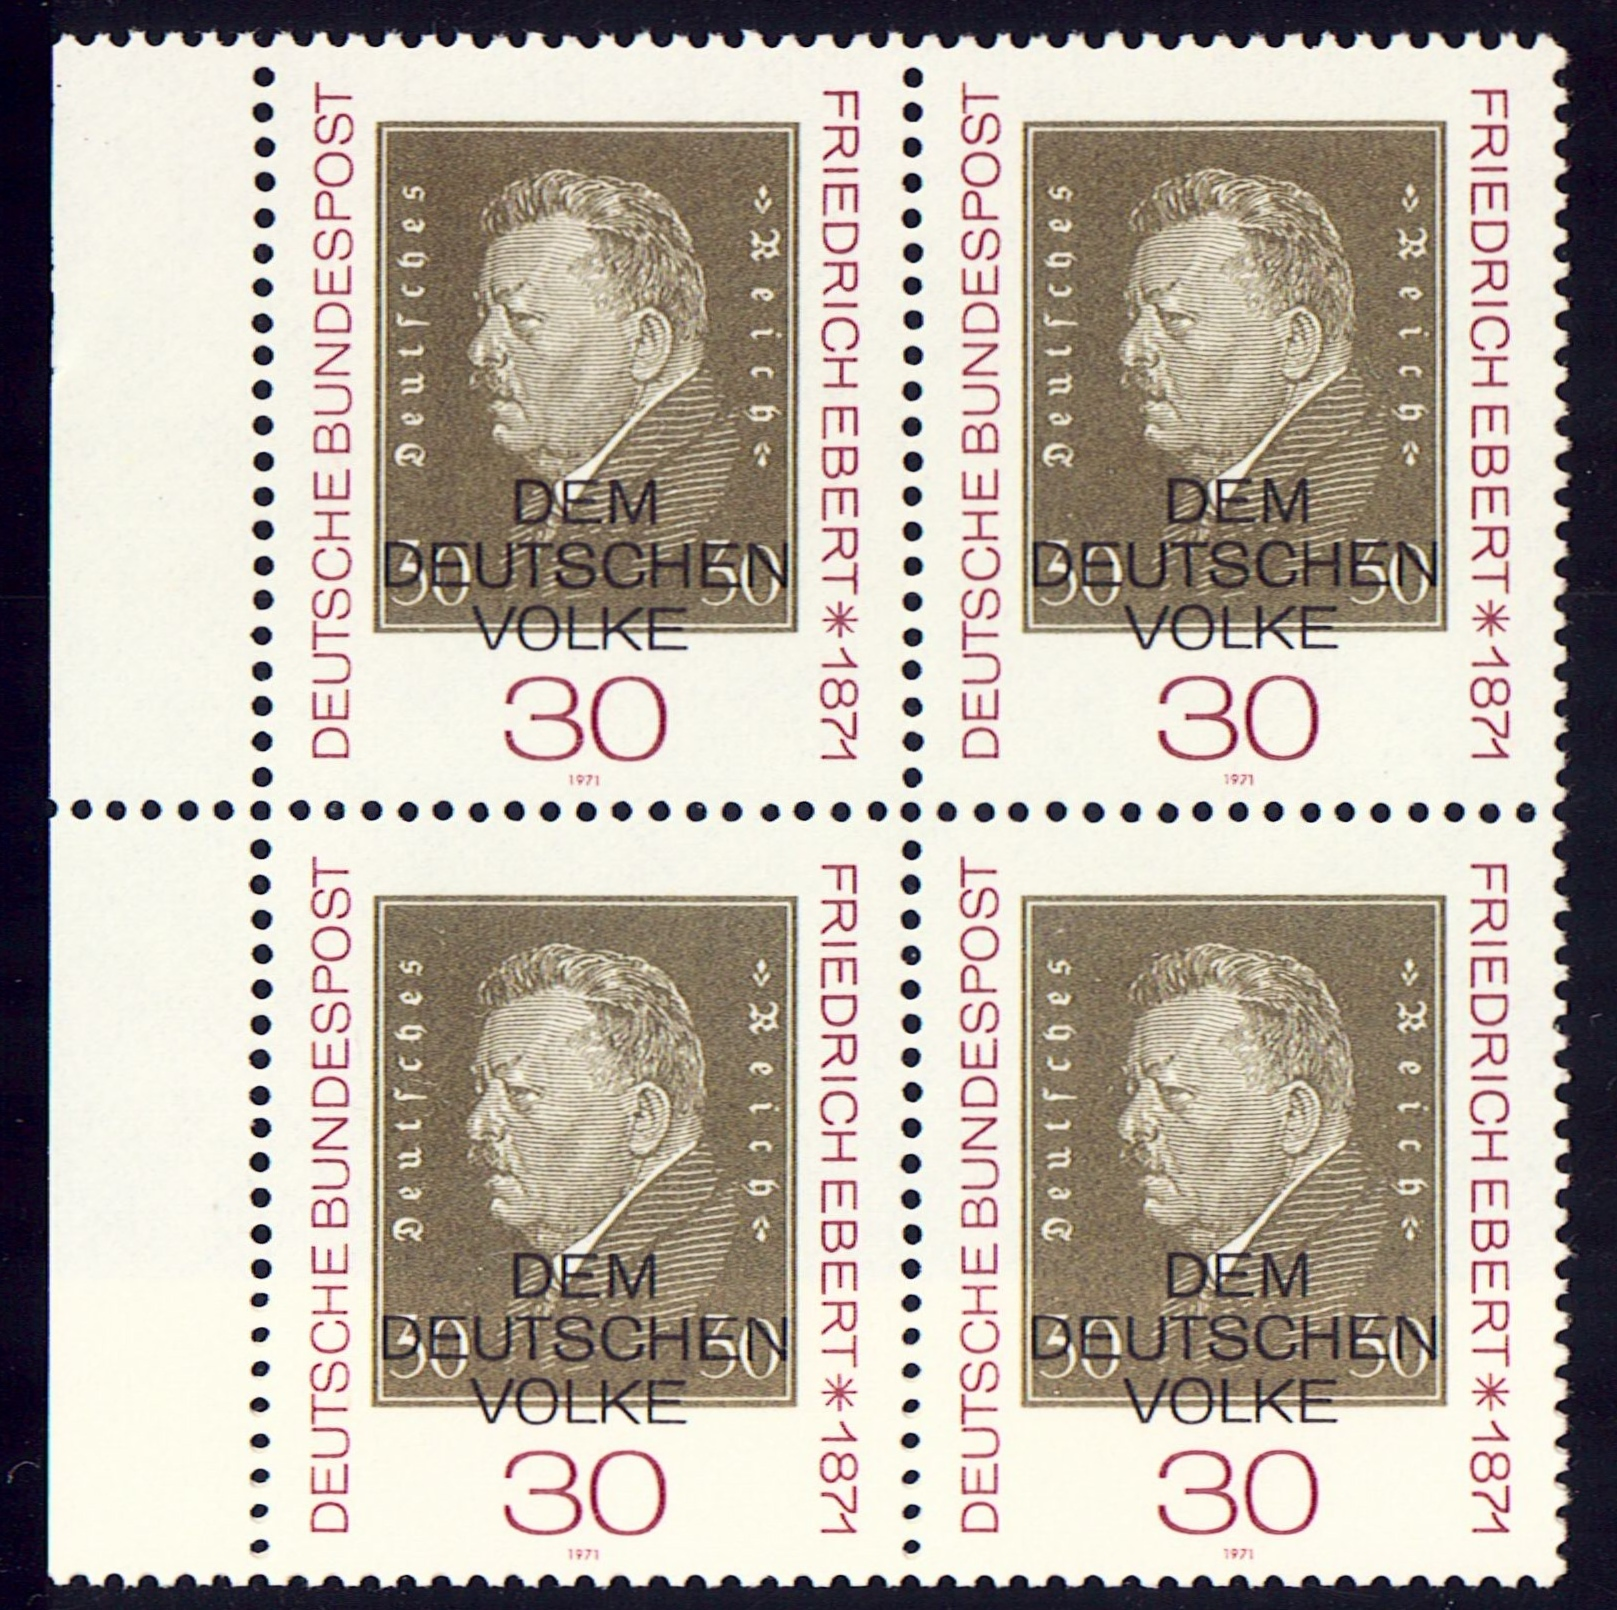 Germany Scott 1053, MNH, Block of 4, BL4, Friedrich Ebert, 1871